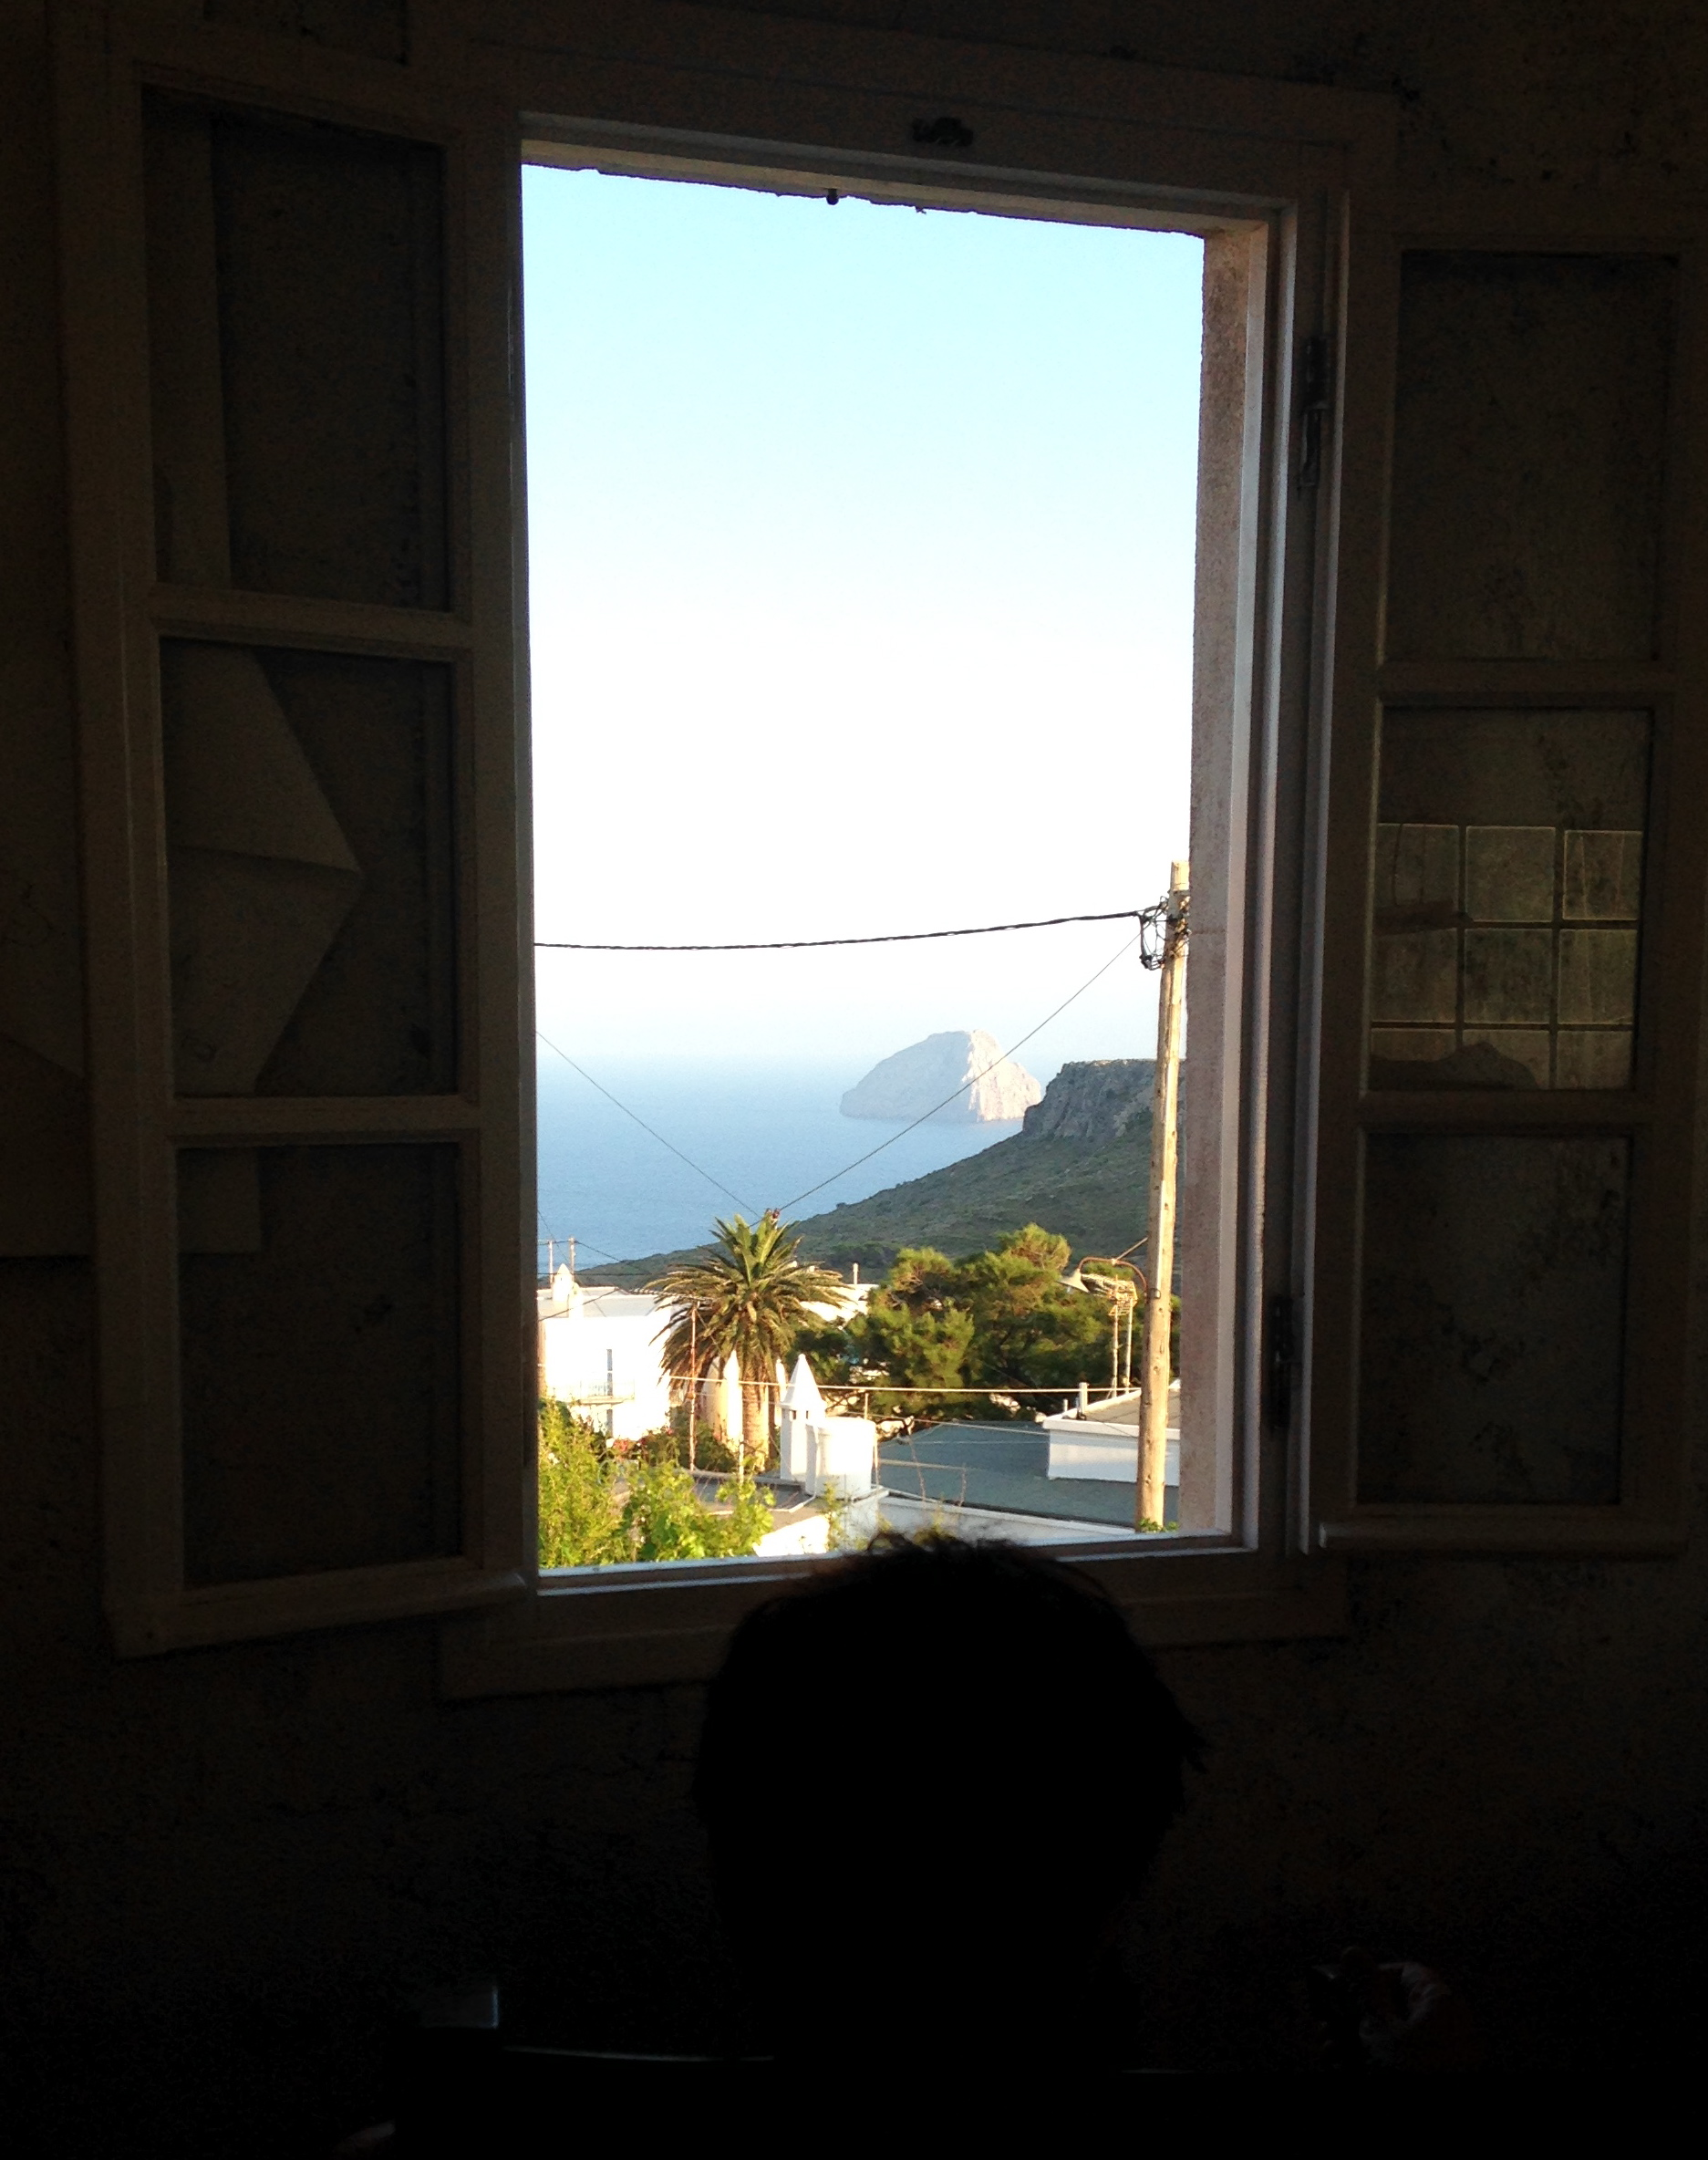 View from the thinking chair. The window looks over the town of Chora, and onto the small uninhabited island Avgo ('egg' in Greek).